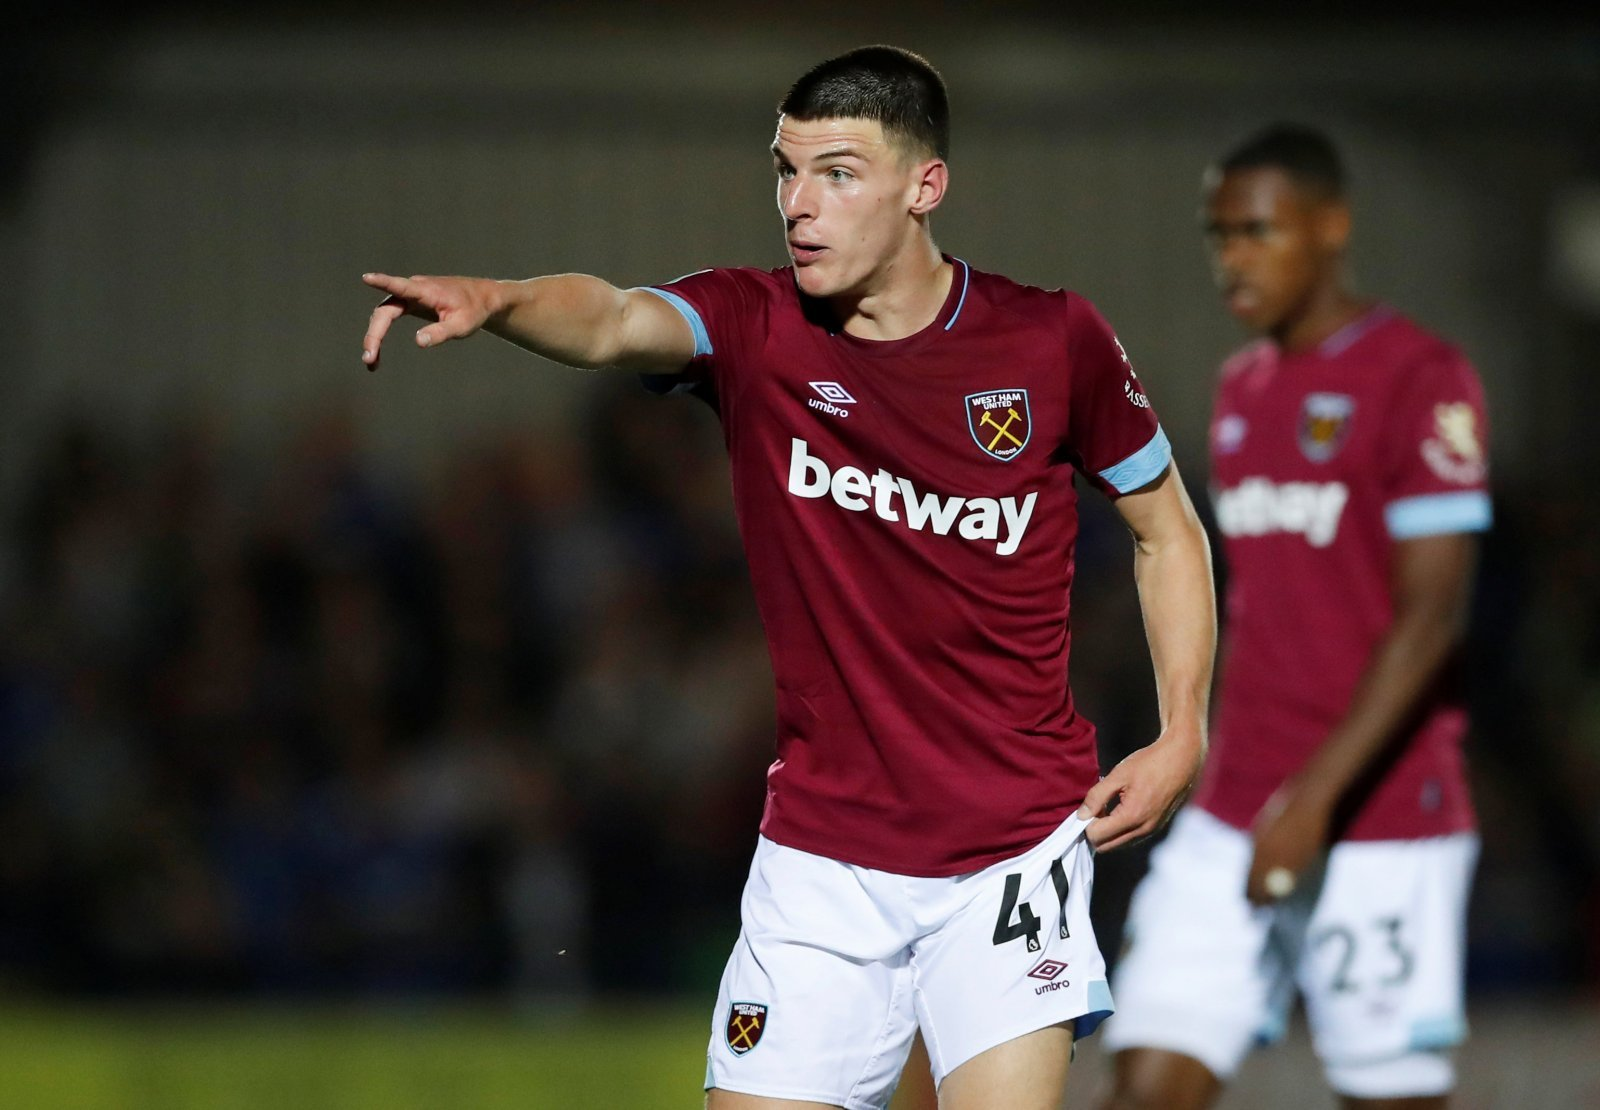 West Ham fans want Declan Rice to start against Everton